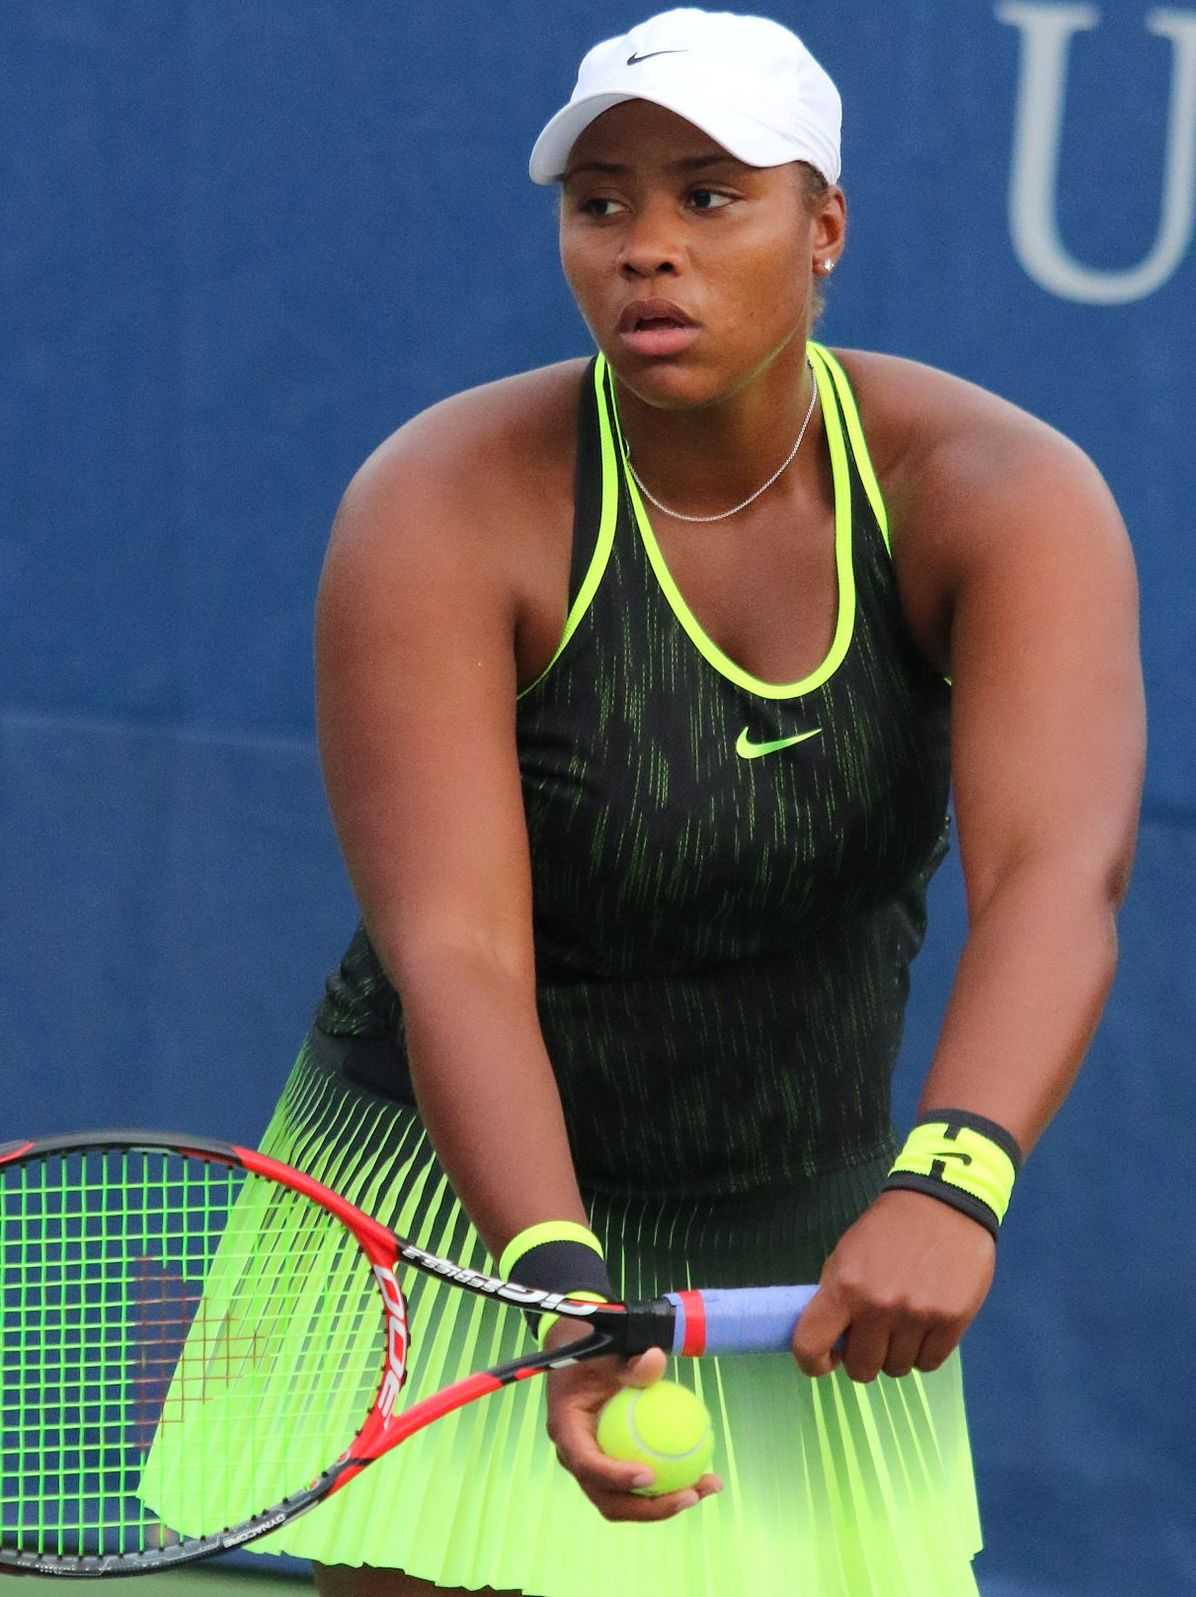 Taylor Townsend Career